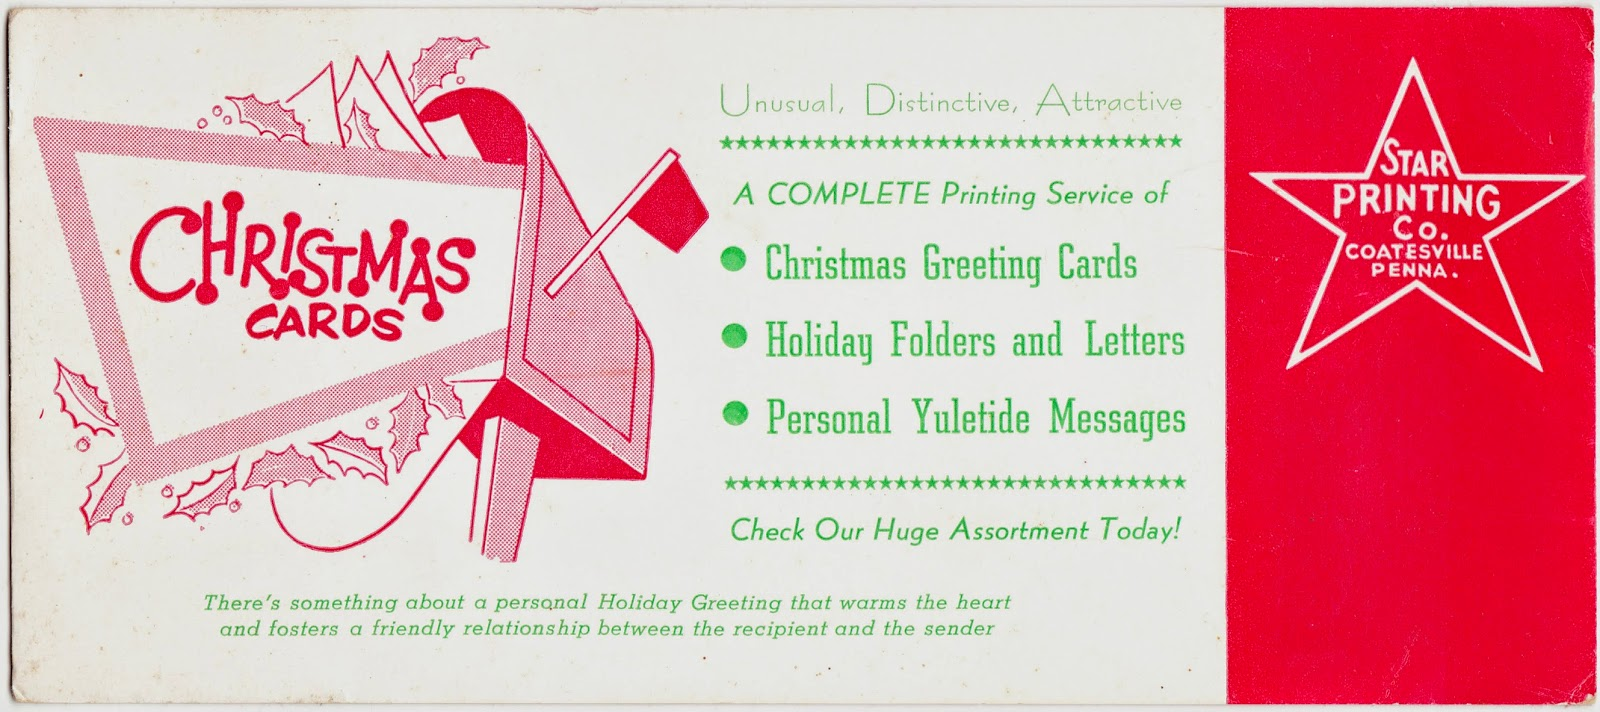 Papergreat: Ink blotter: Get your Christmas cards from Star Printing ...